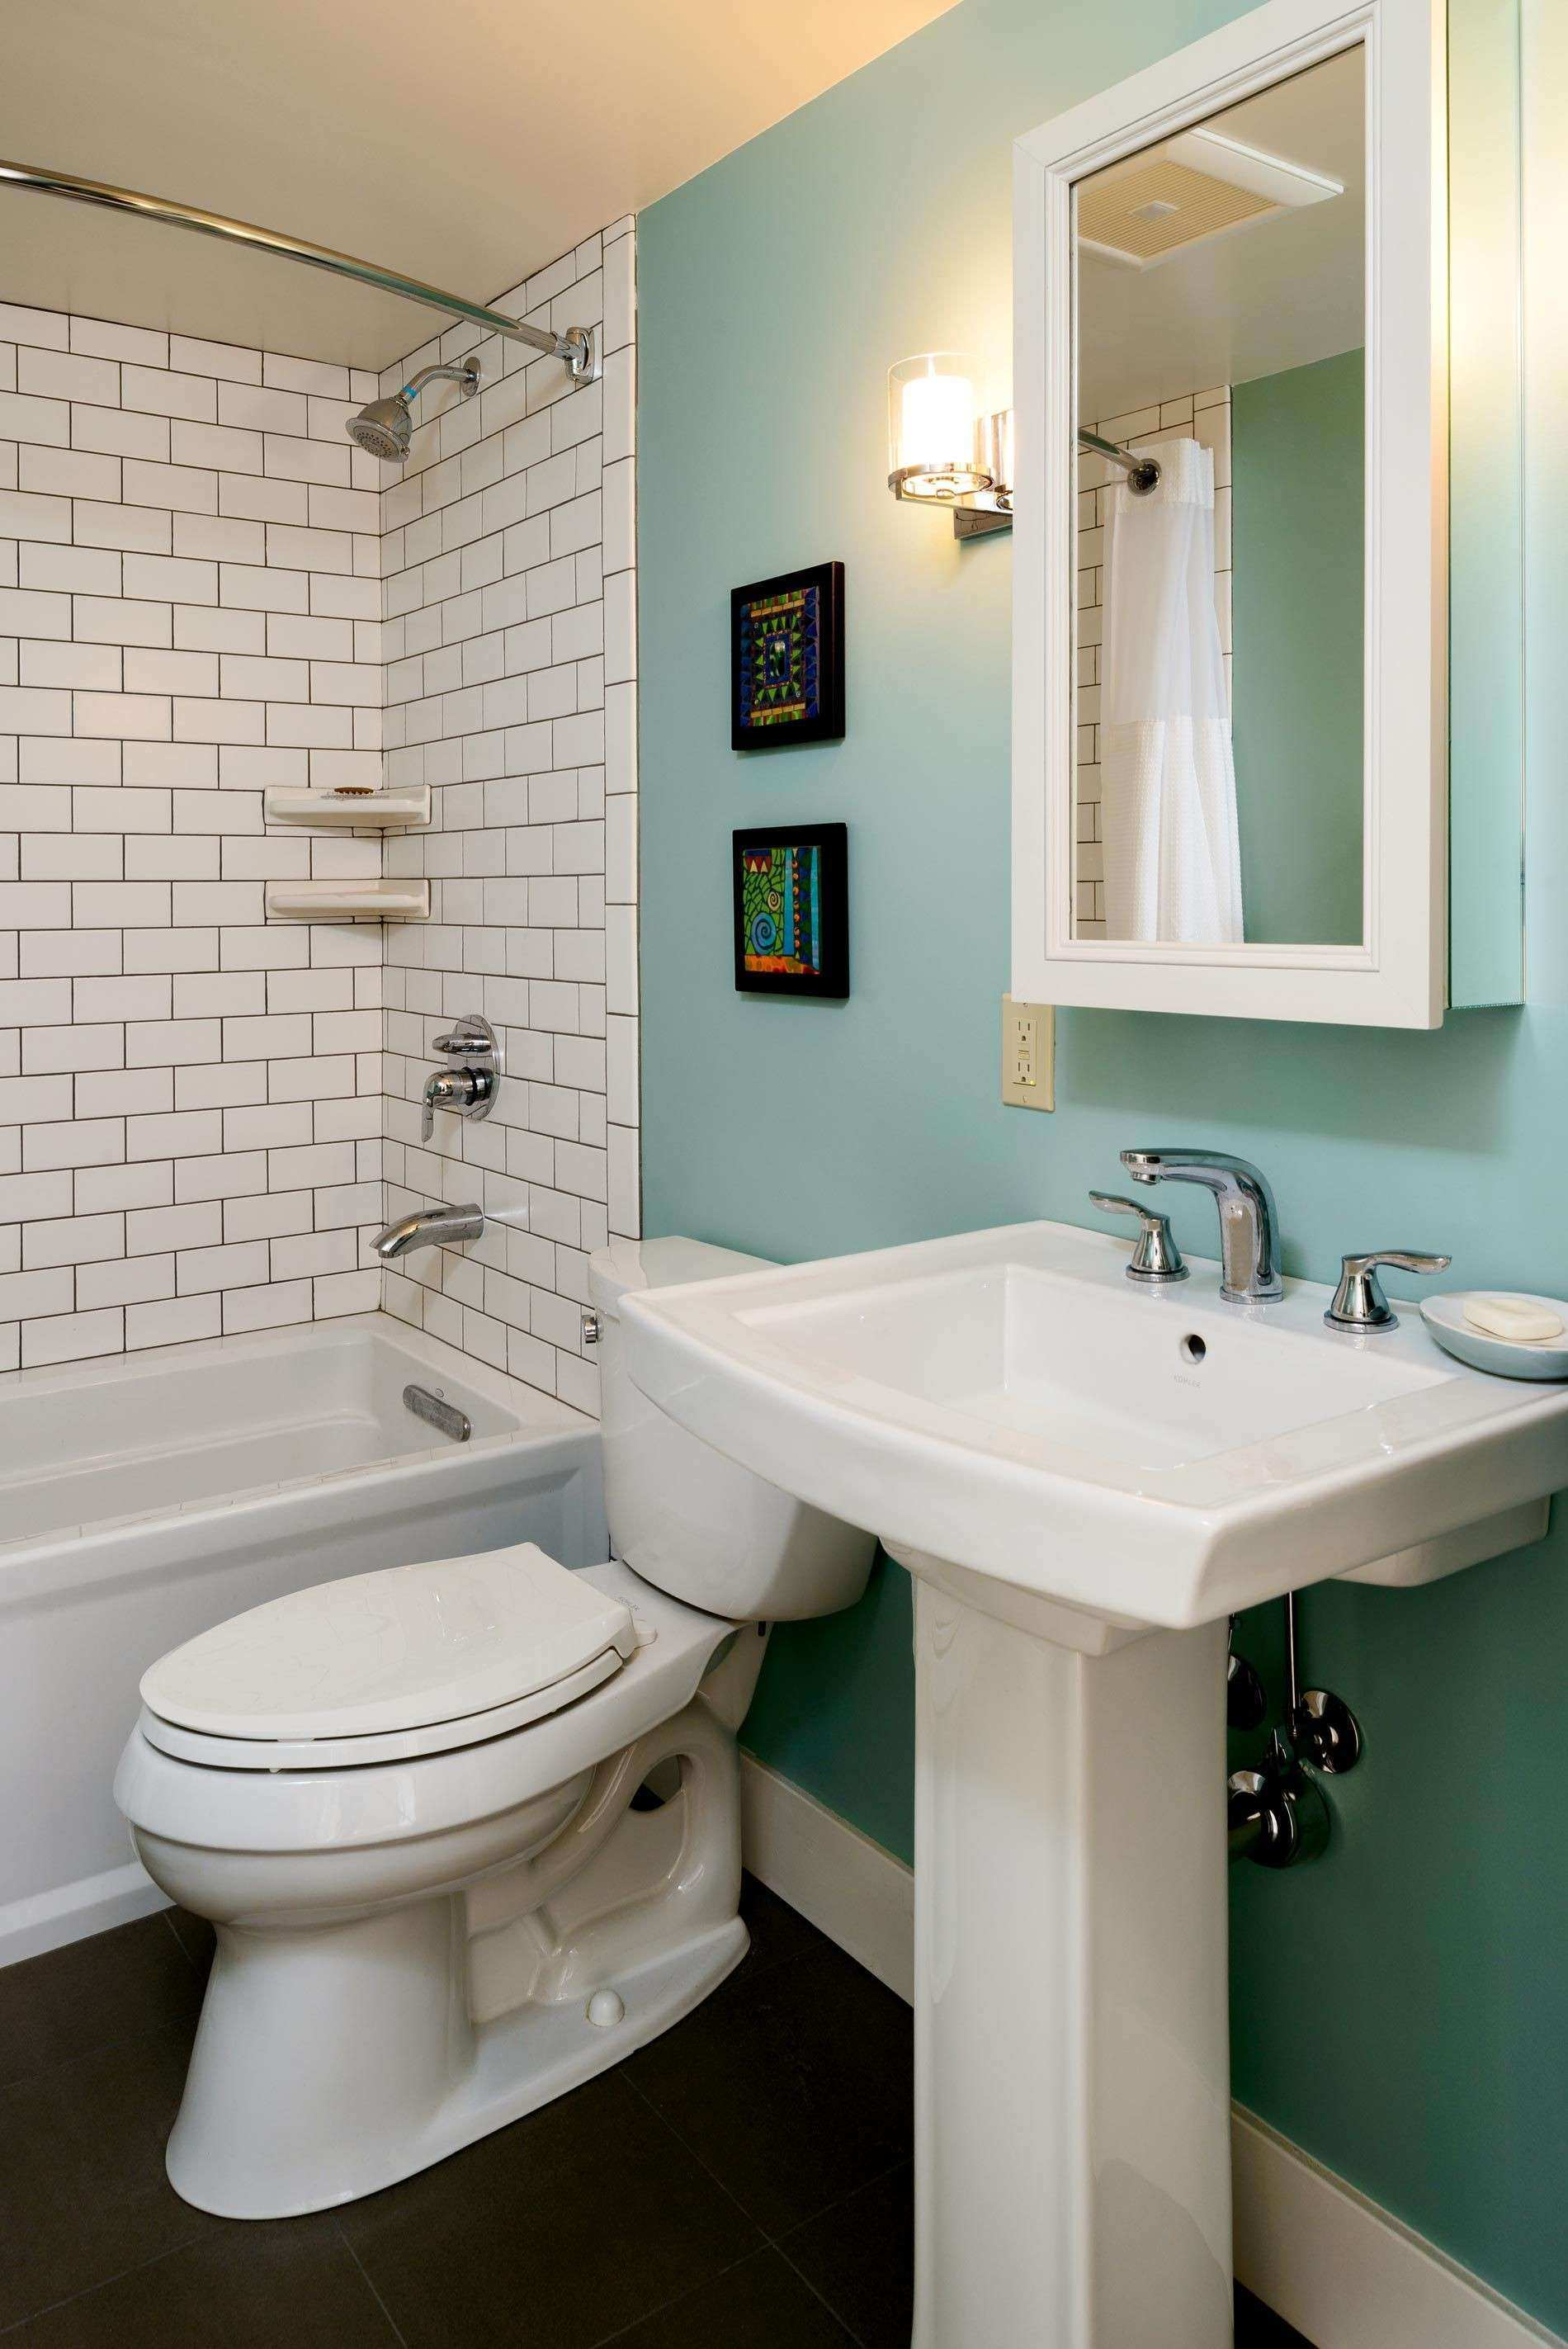 Pictures for Bathrooms Walls Inspirational Bathroom Remodel Retro ...